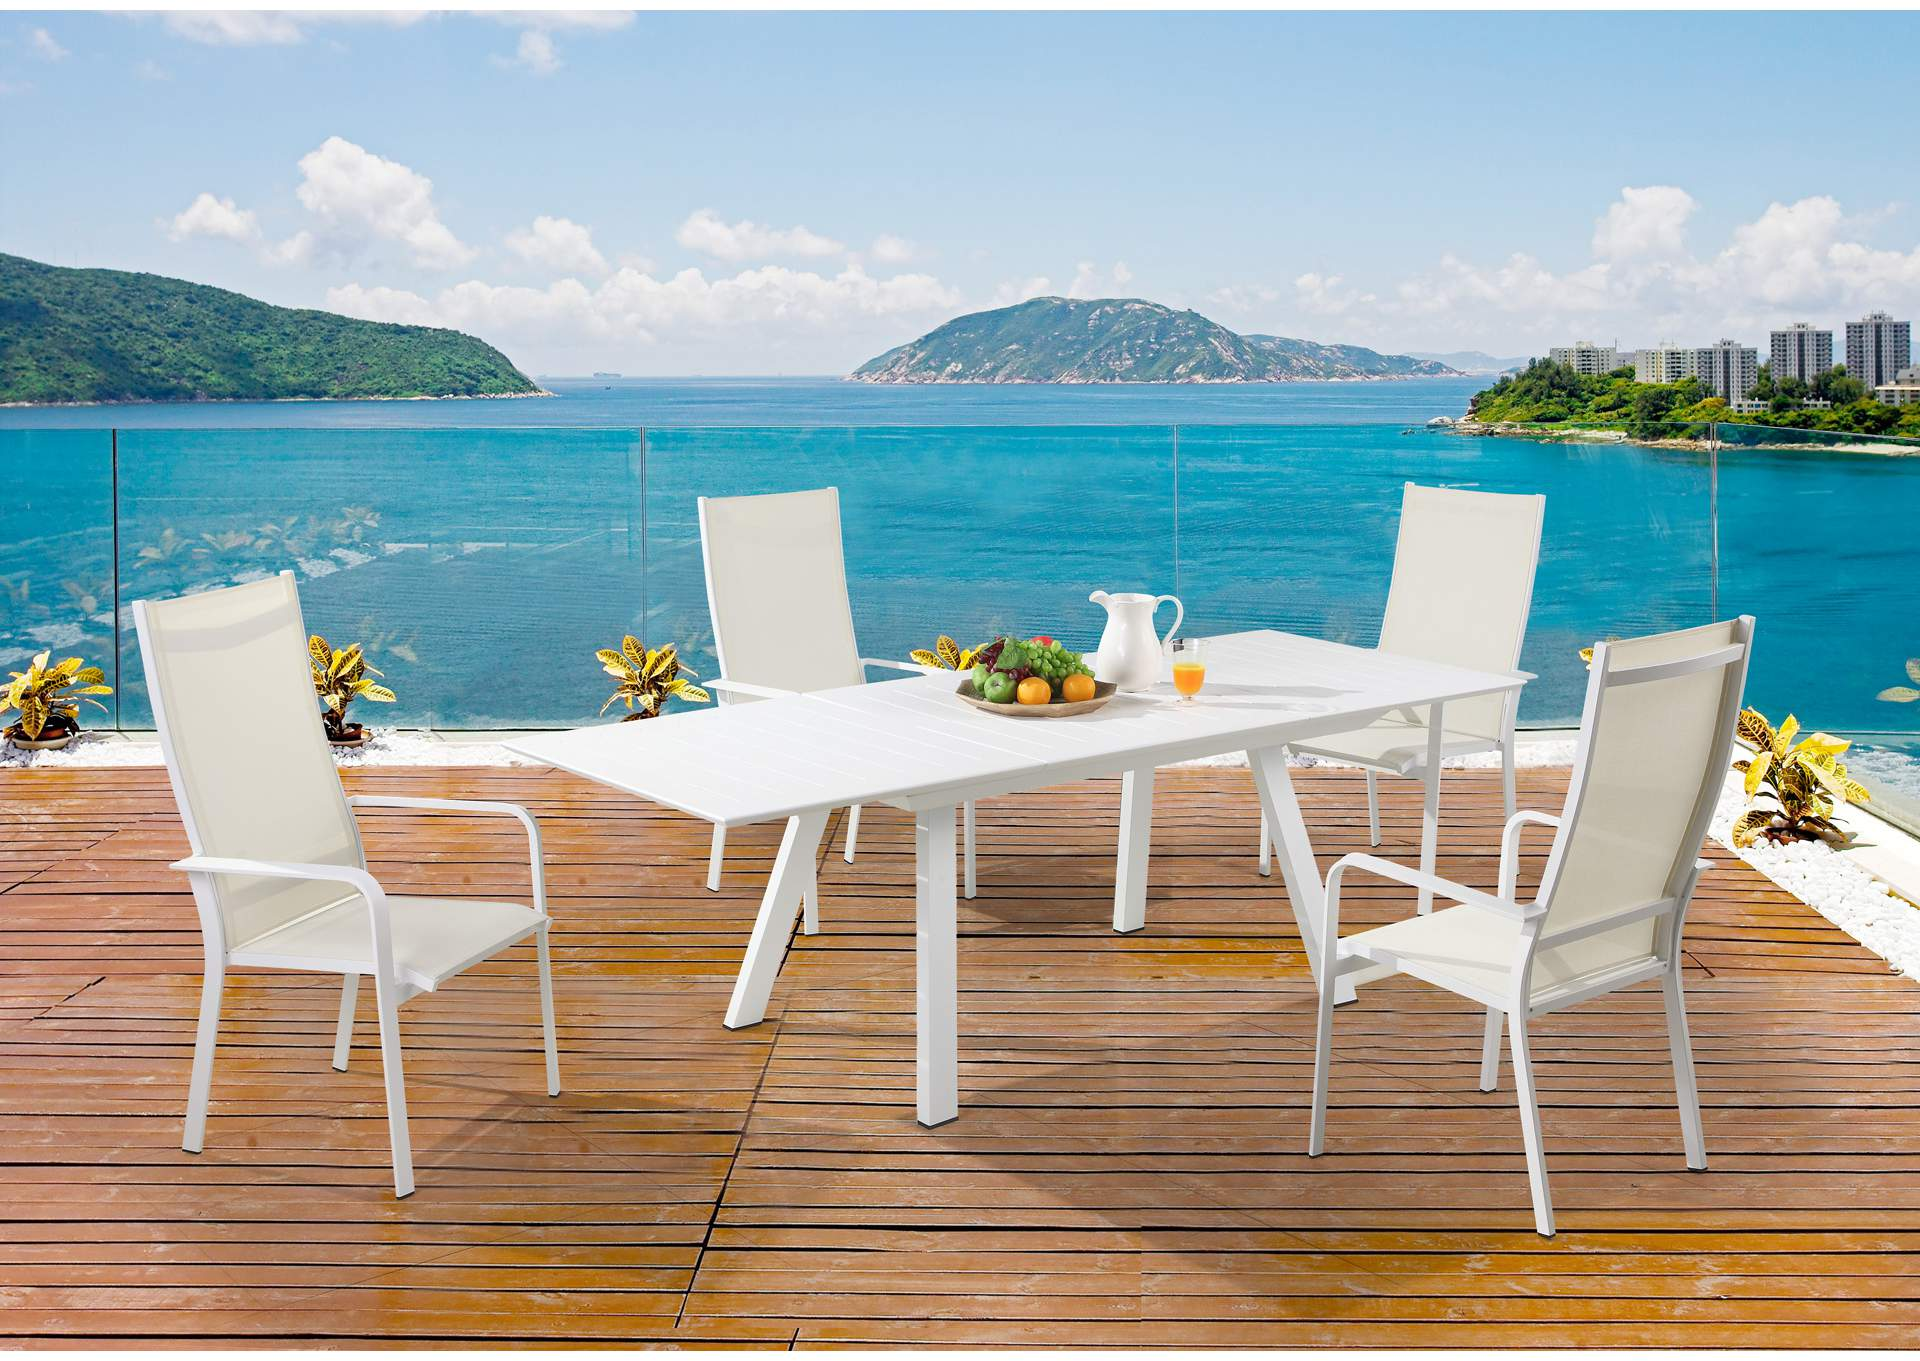 Malibu Matte White Outdoor UV Resistant Dining Set w/ Extendable Table & HB Chairs,Chintaly Imports